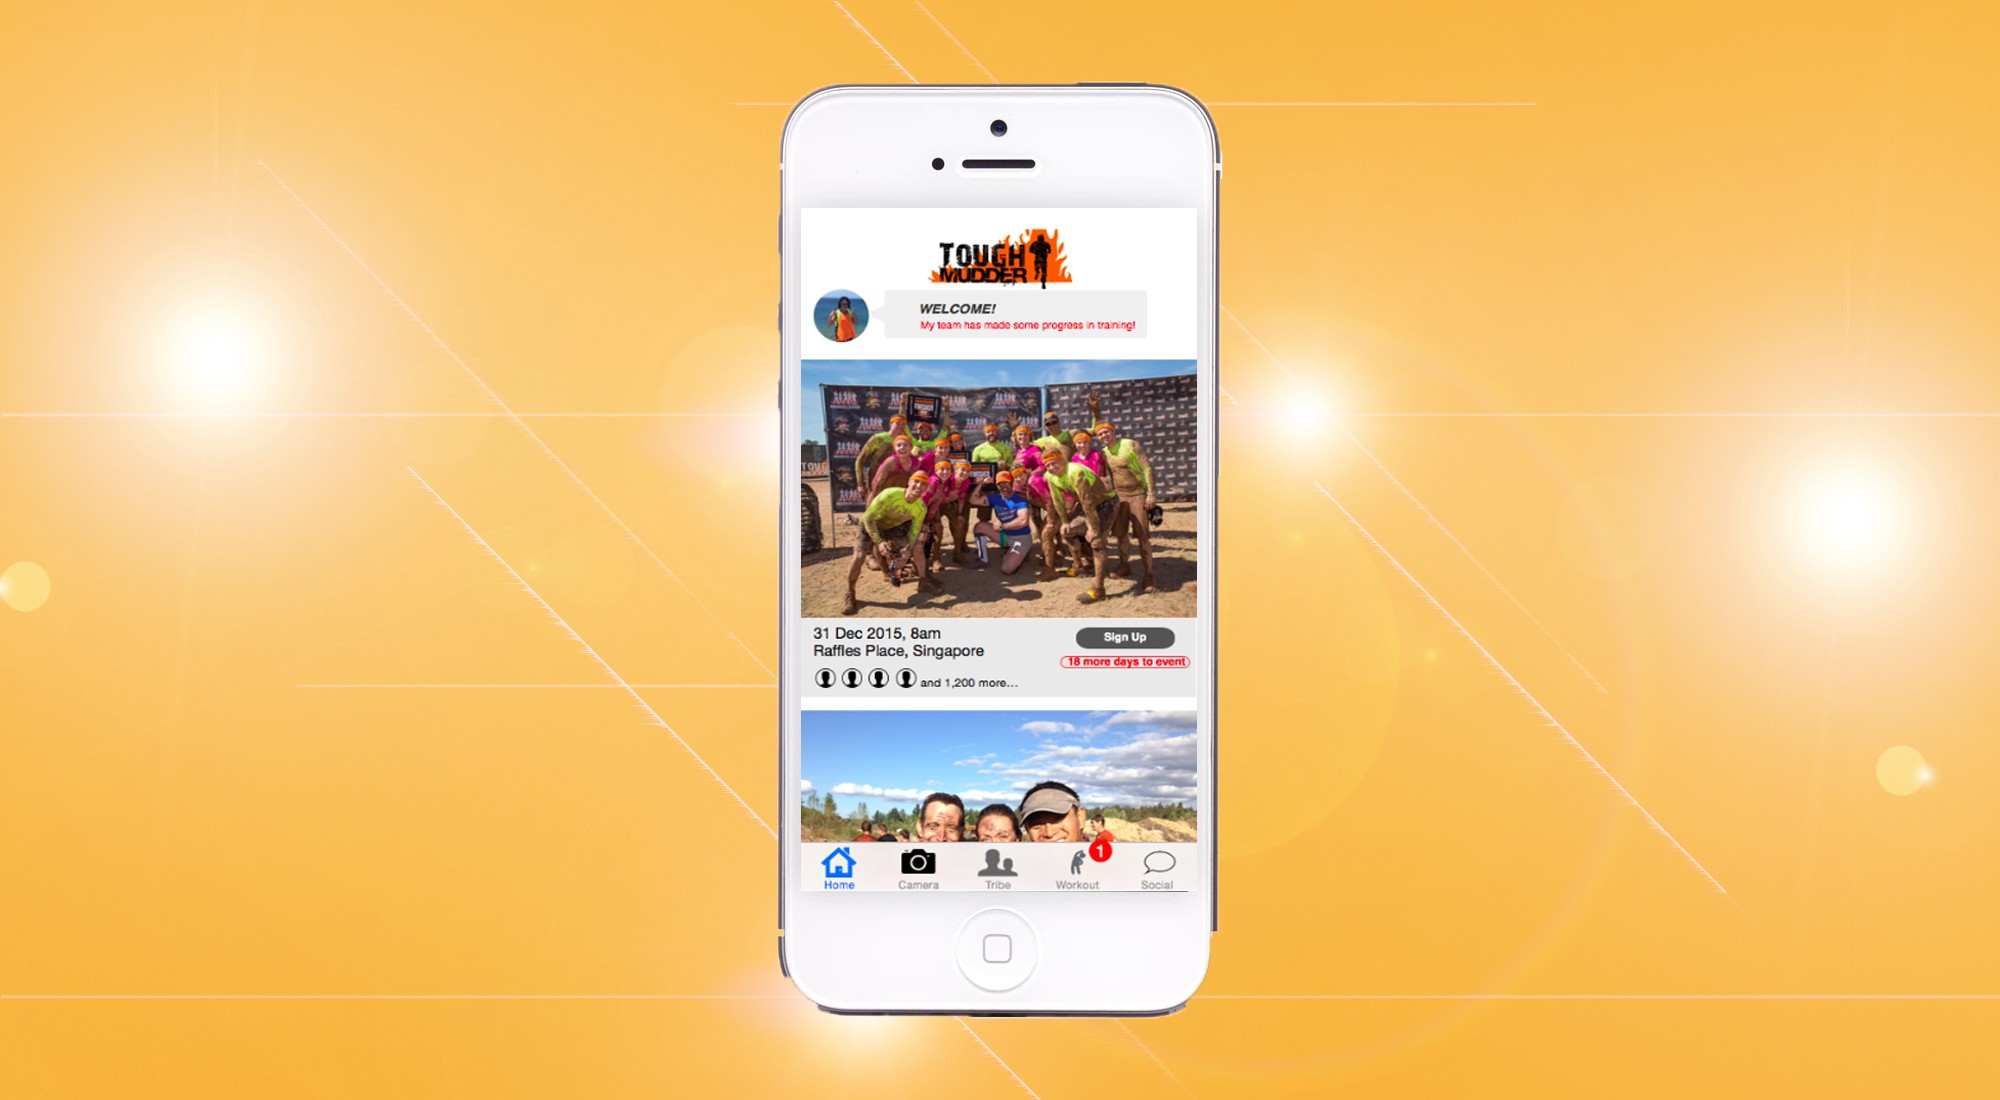 TOUGH MUDDER MOBILE APP: THOUGHTS BEHIND THE SCENES